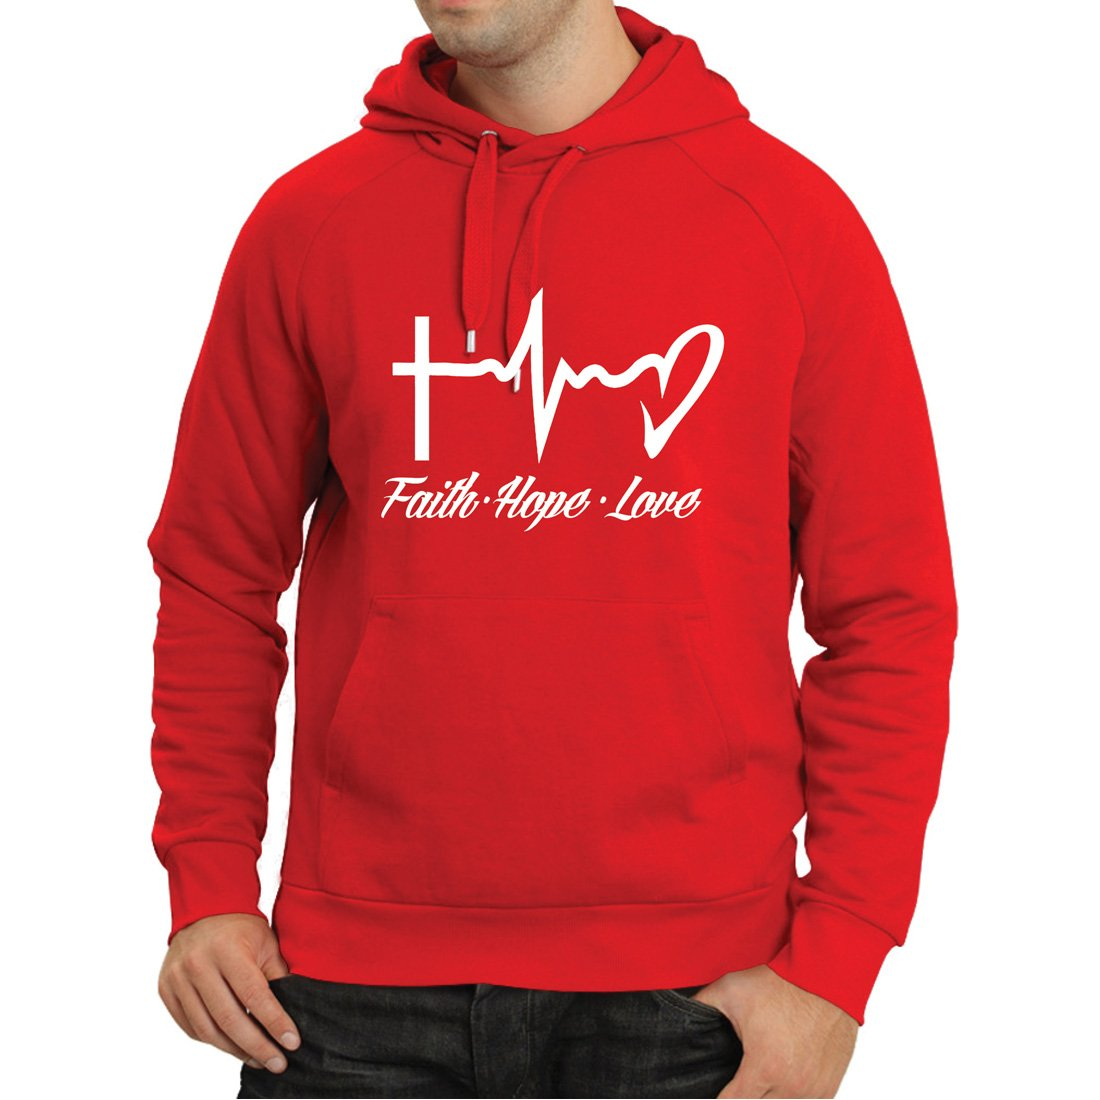 Amazon.com: lepni.me Hoodie Faith - Hope - Love - 1 Corinthians 13:13, Christian Quotes and Proverbs, Religious Sayings: Clothing